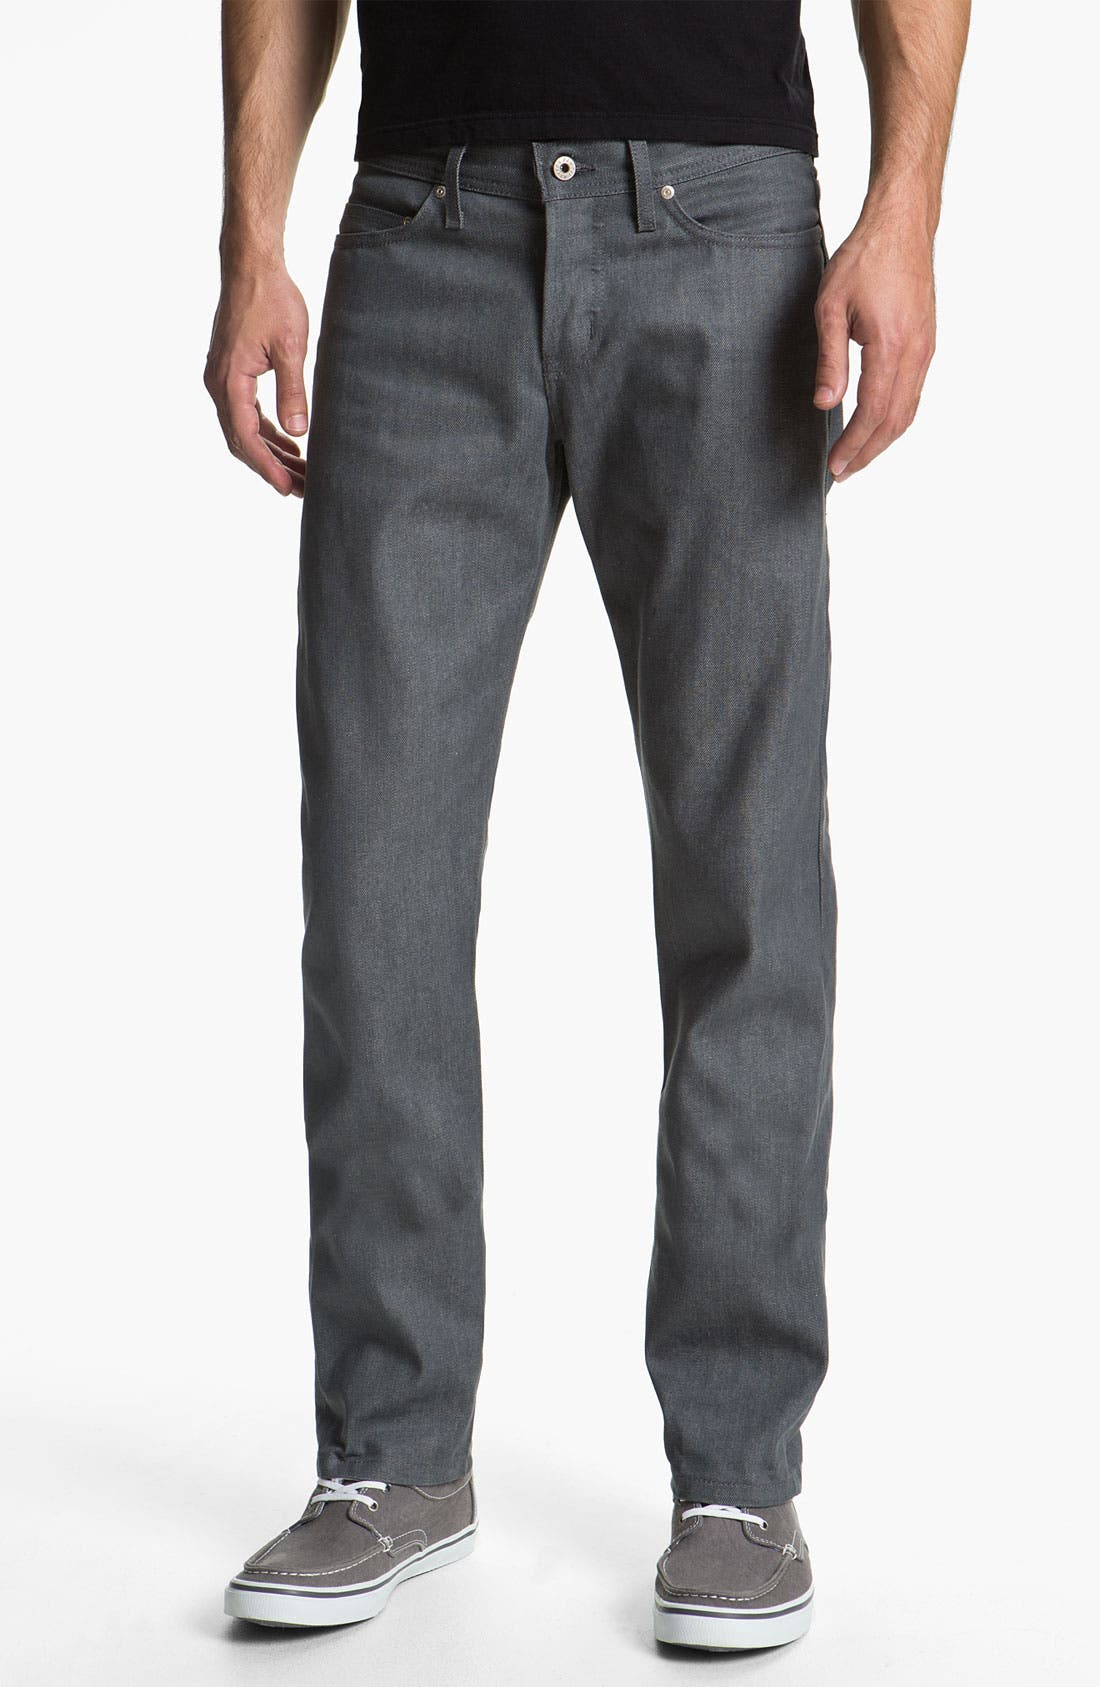 Alternate Image 1 Selected - Naked & Famous Denim Weird Guy Slim Fit Selvedge Jeans (Grey)